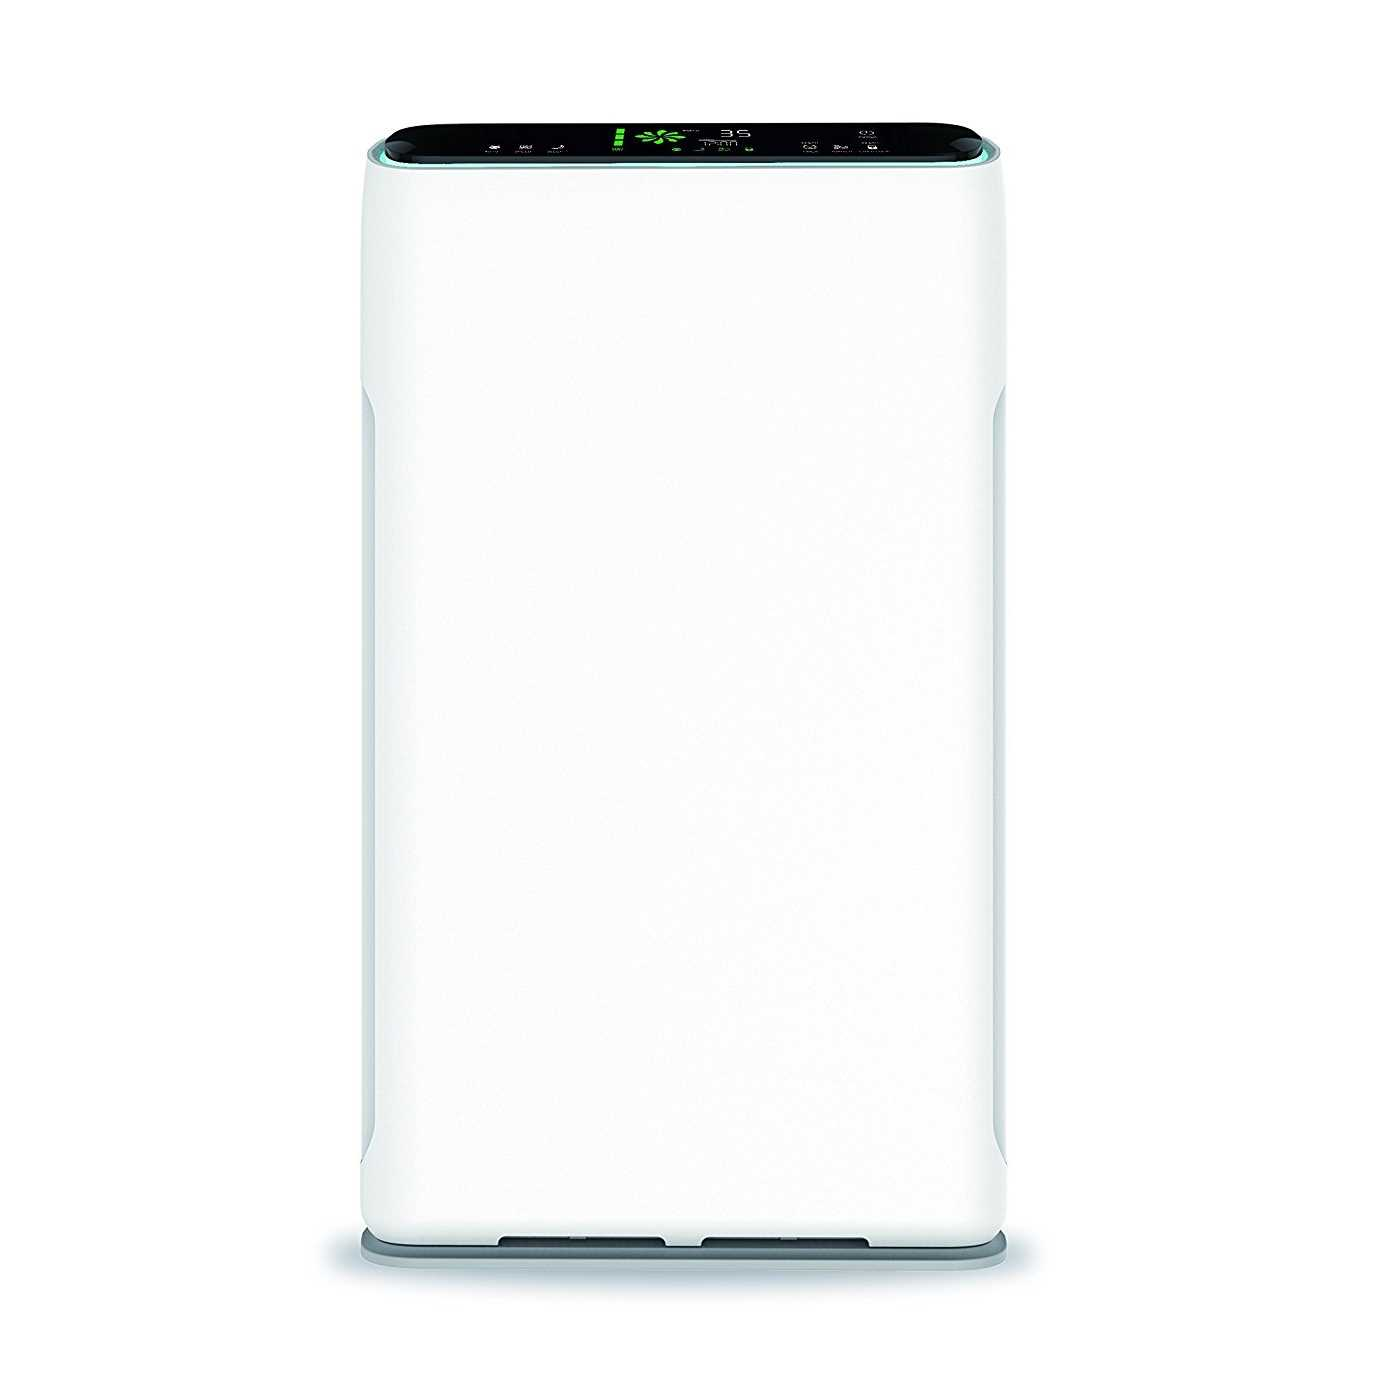 Aeroloft AL9070 Room Air Purifier